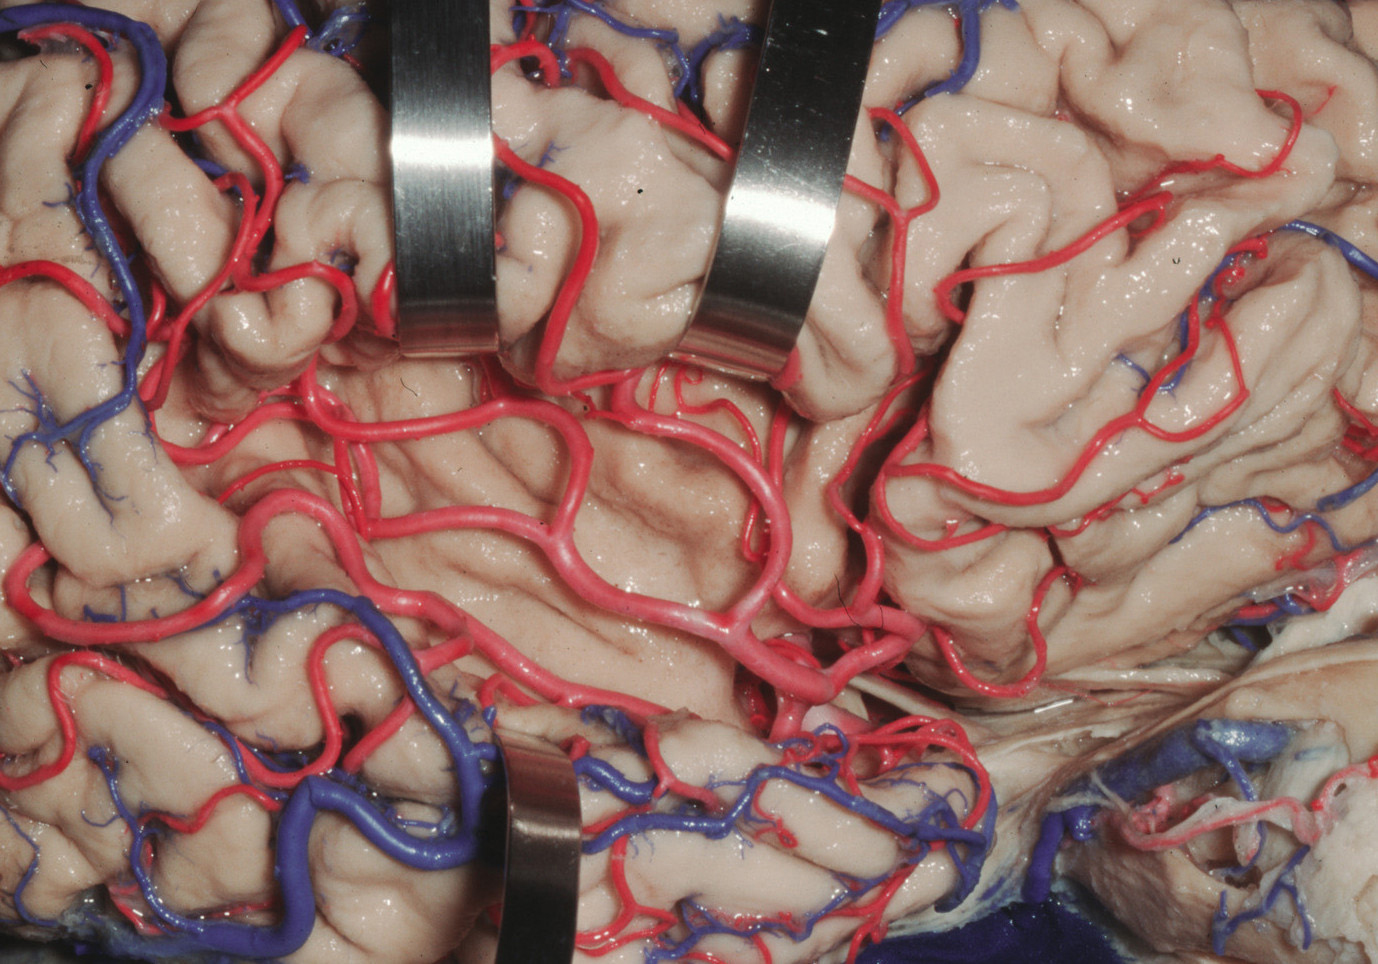 Figure 2: The Sylvian fossa contains the MCA and is the space just lateral to the insula (image courtesy of AL Rhoton, Jr).